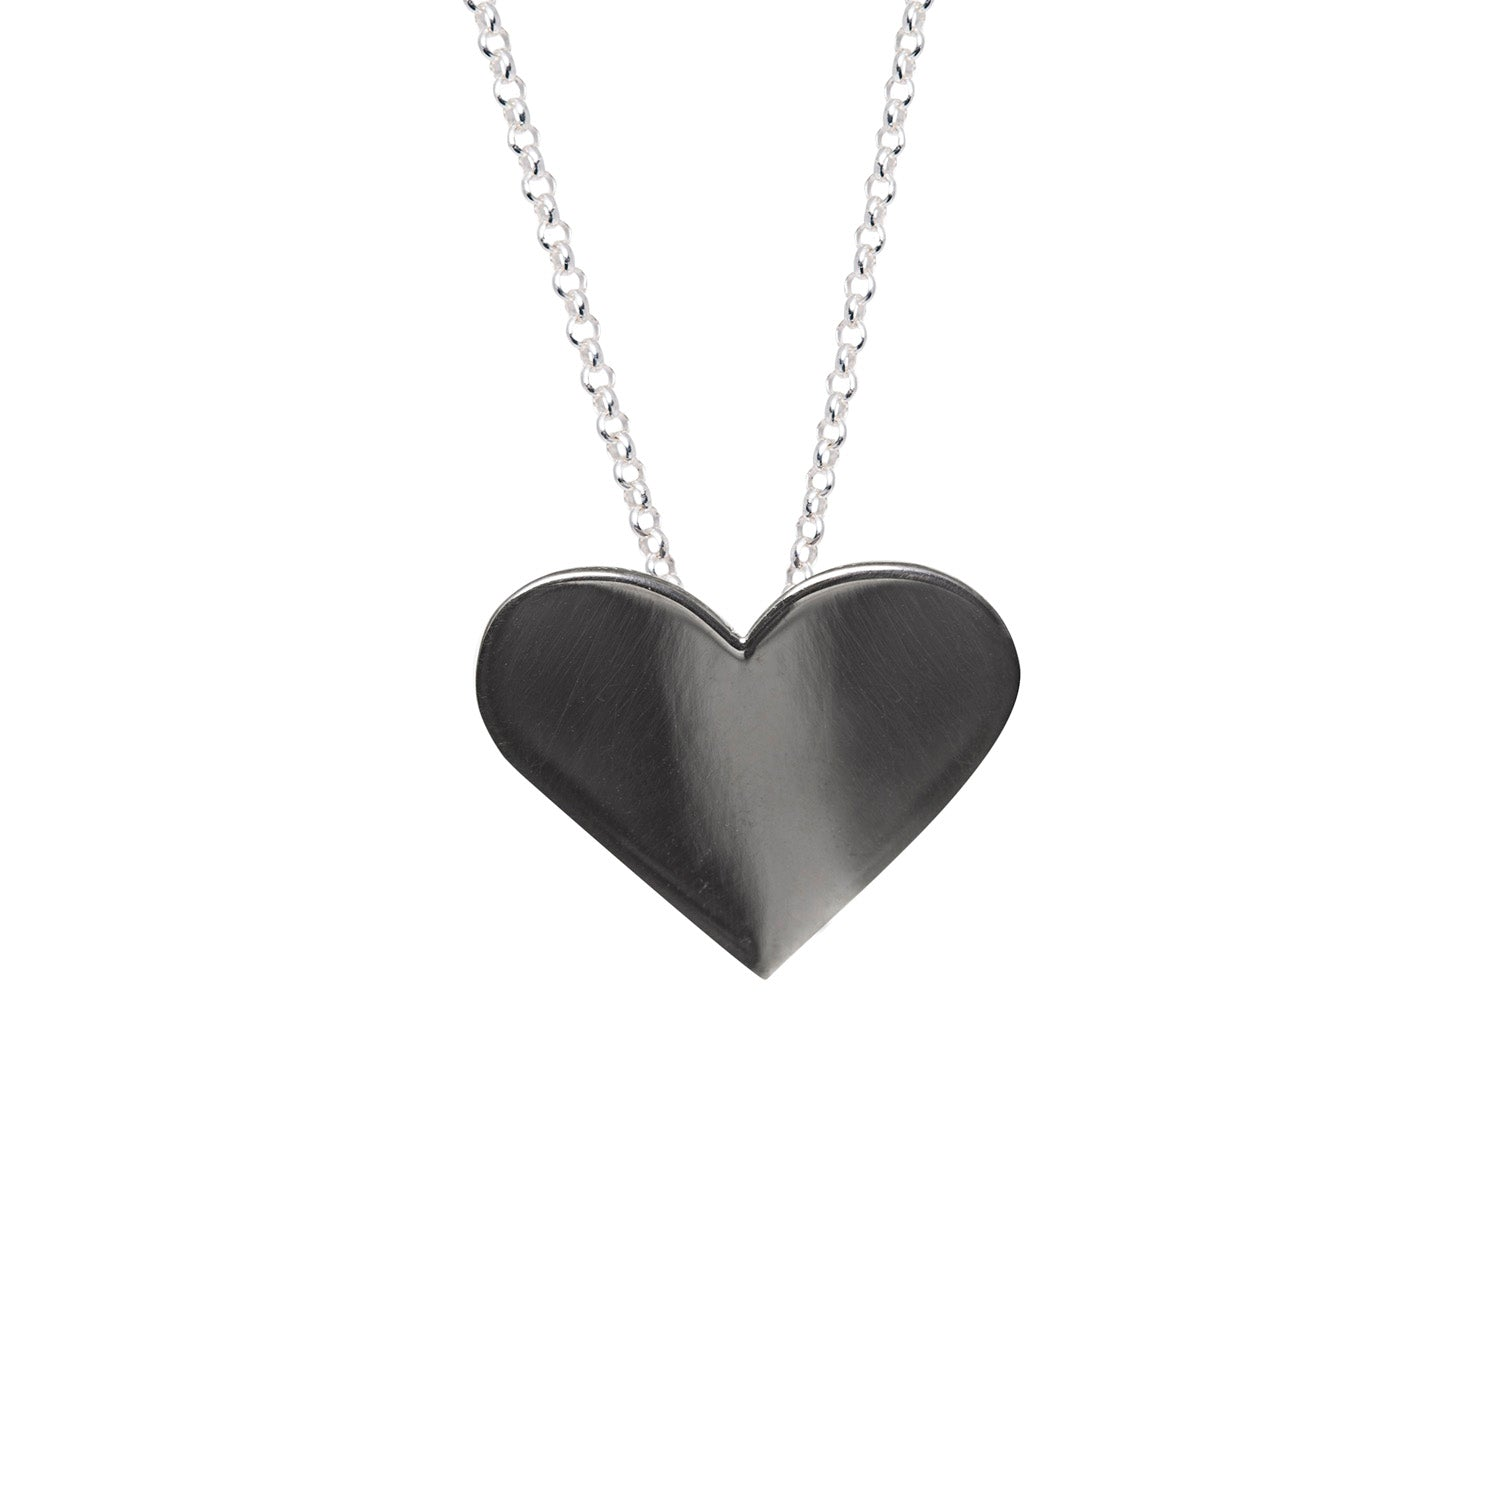 Edge Only Black Heart Pendant in black rhodium sterling silver